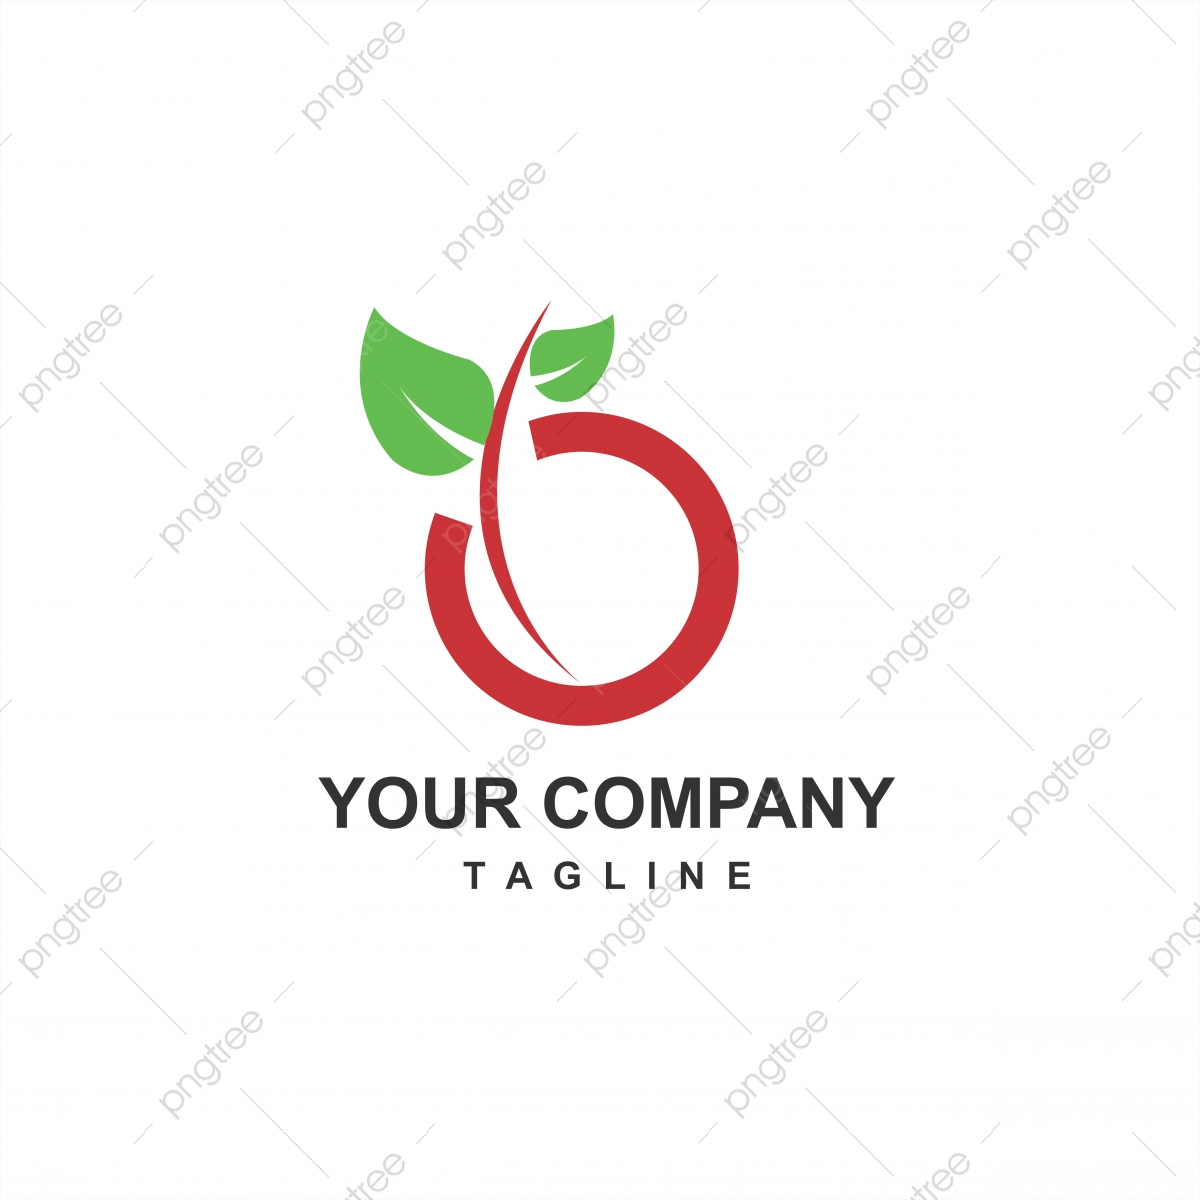 Organic Food Farm For Health And Fresh Body Company Logo And Icon Template For Free Download On Pngtree